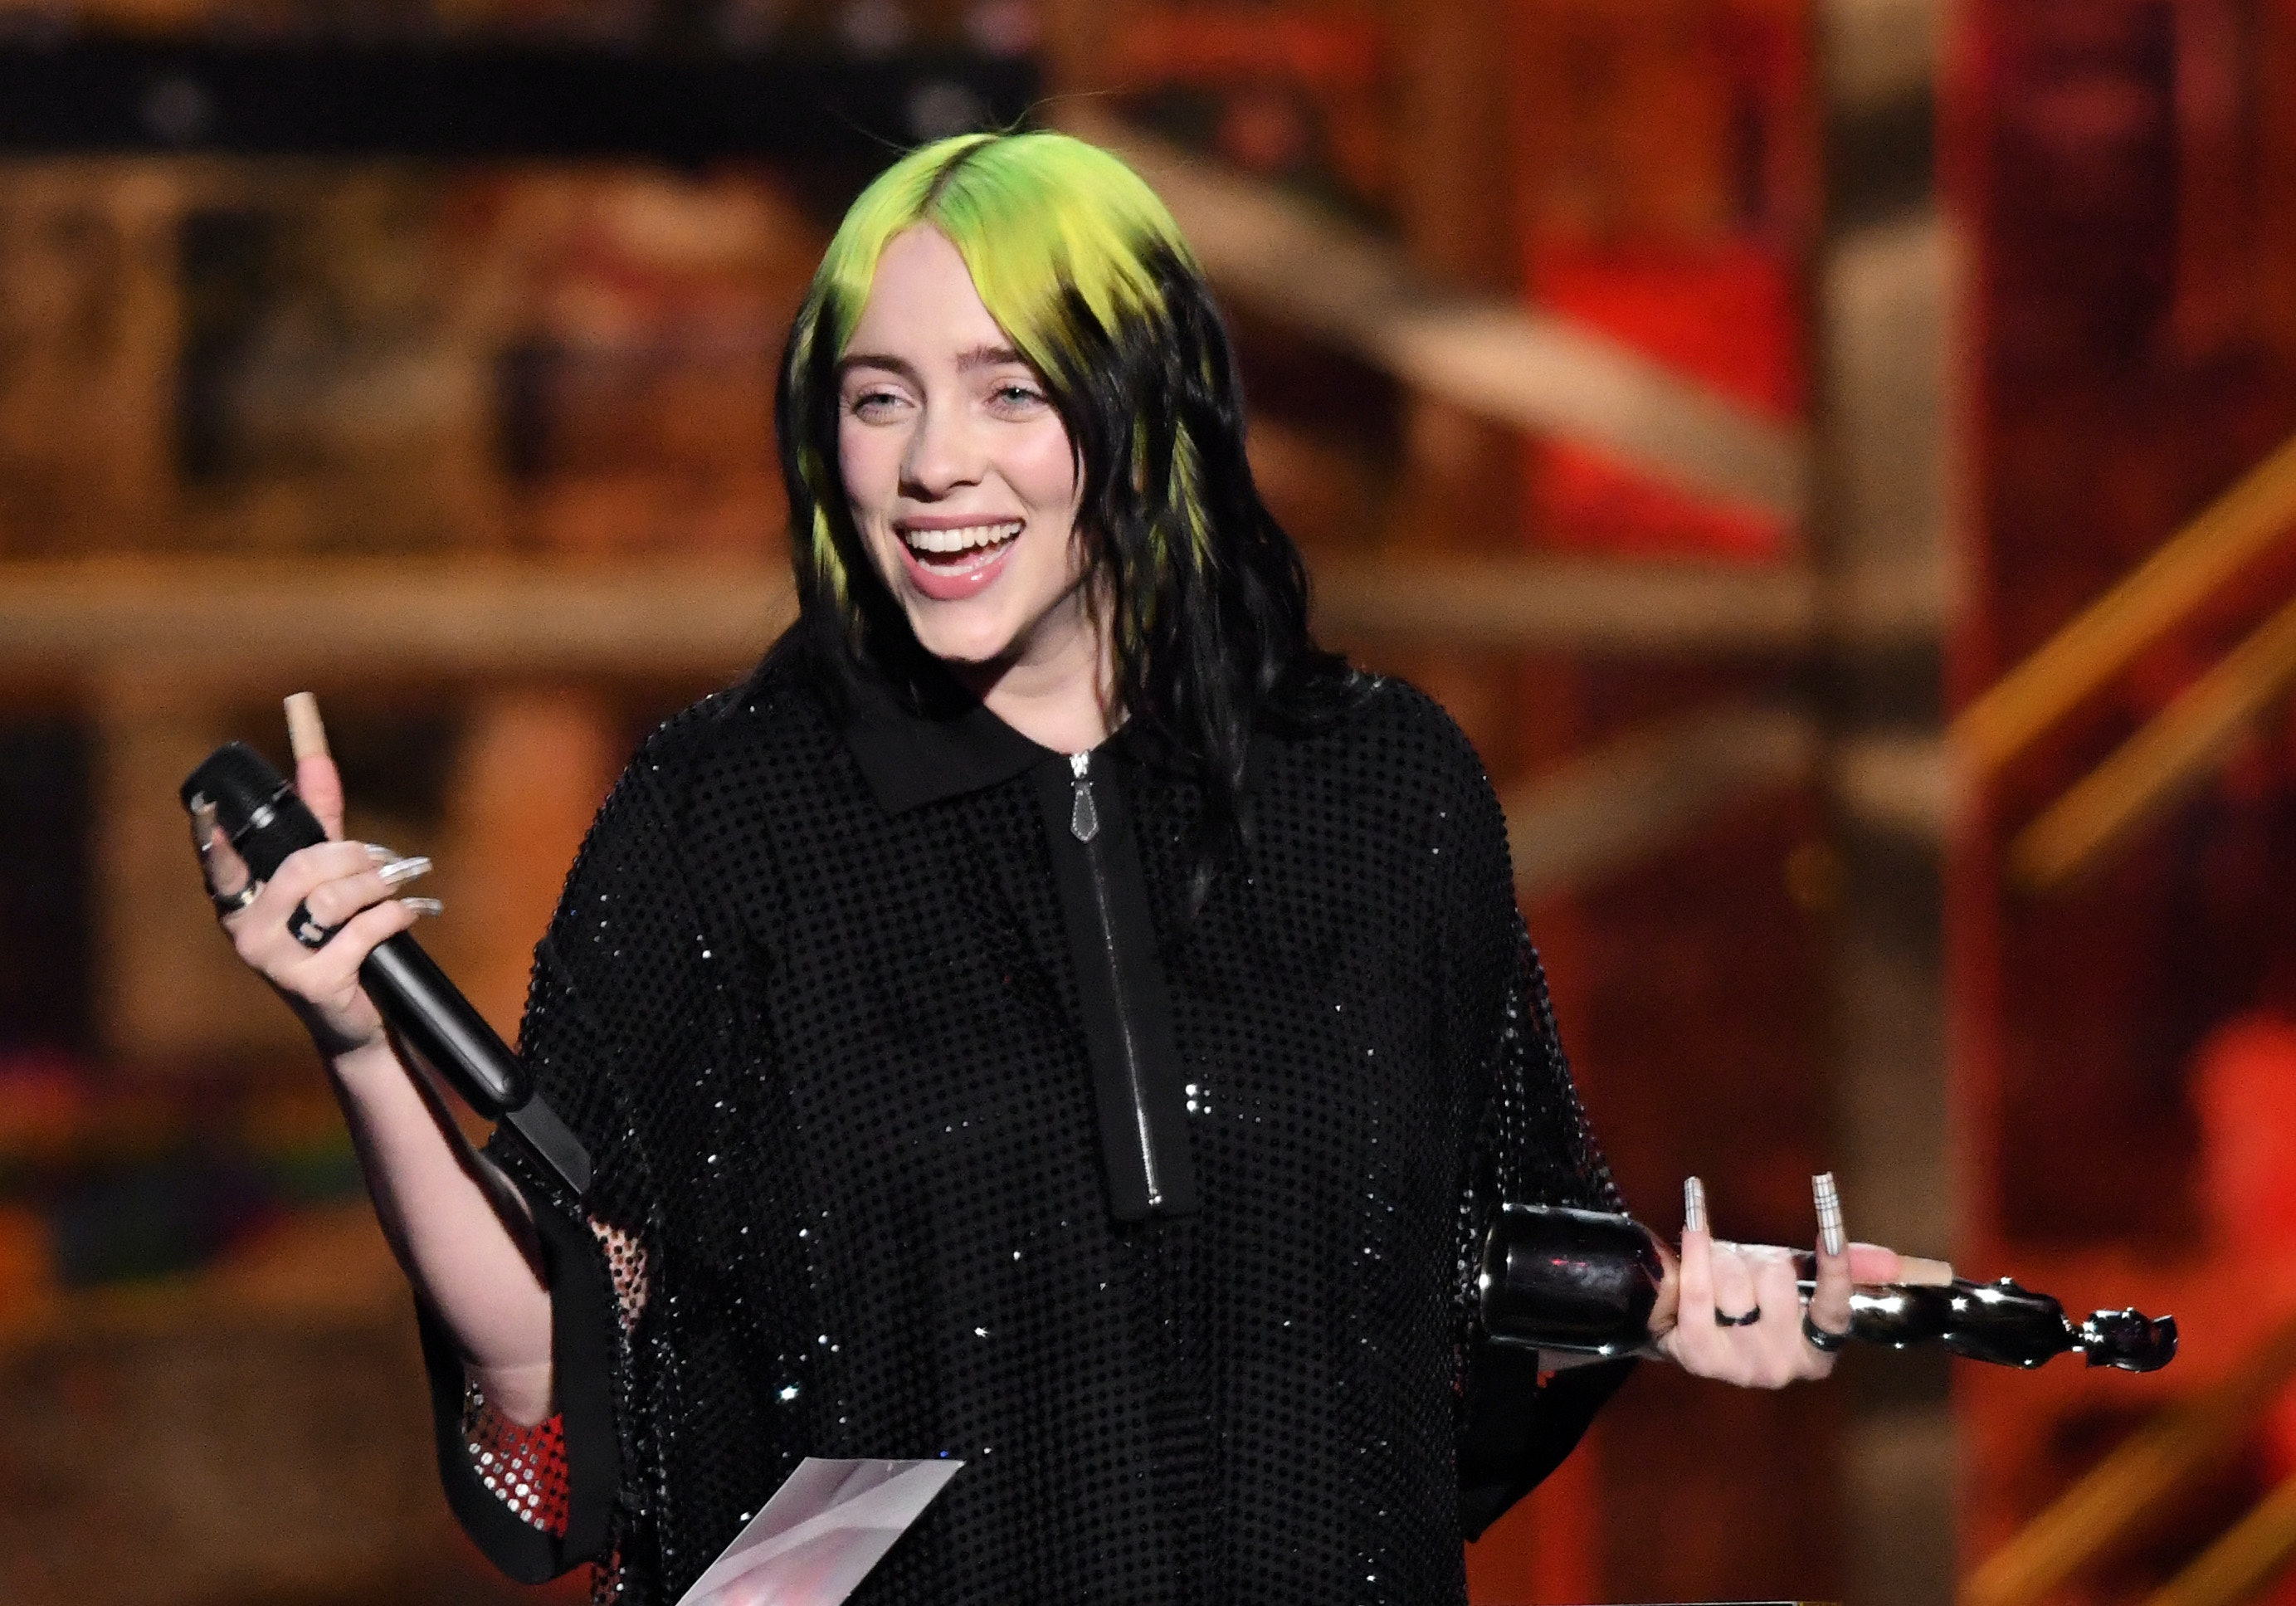 Billie Eilish Went Viral For Her Confused Face At The Oscars